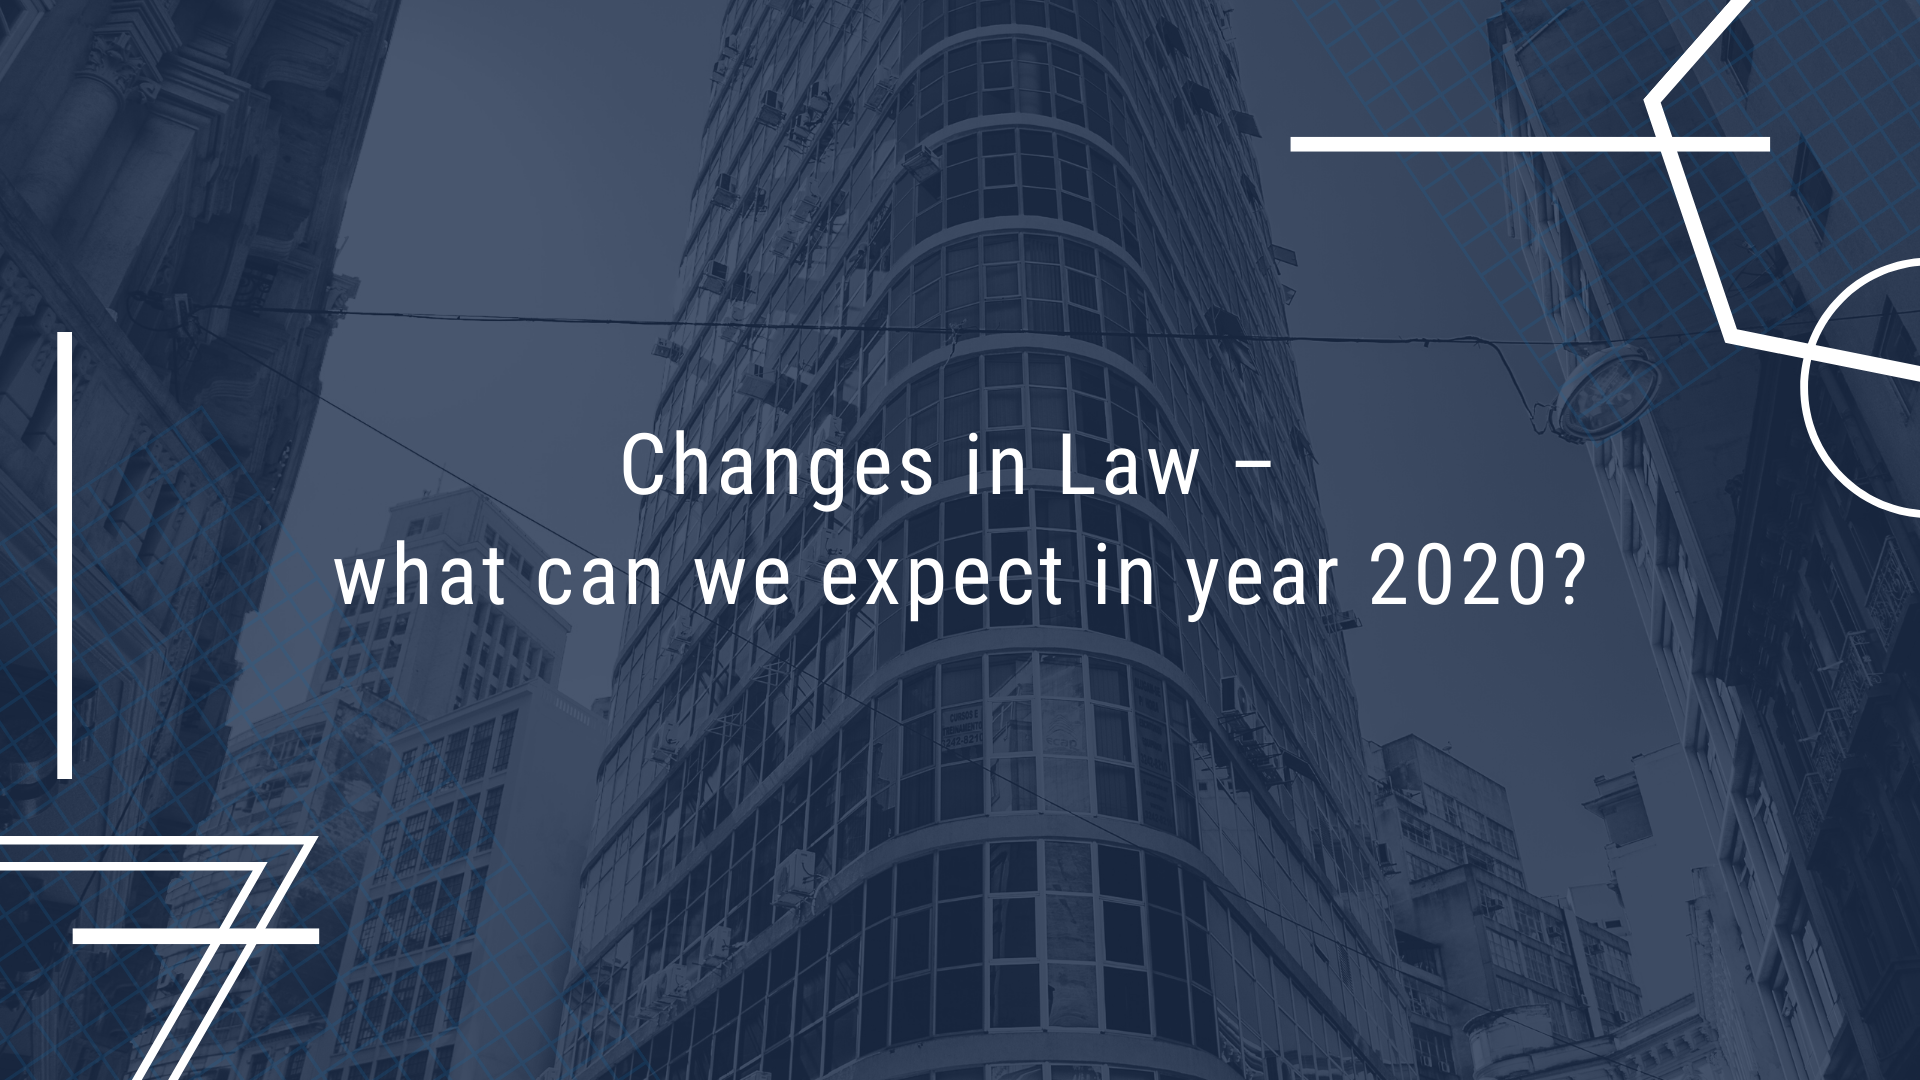 Changes in Law – what can we expect in year 2020?